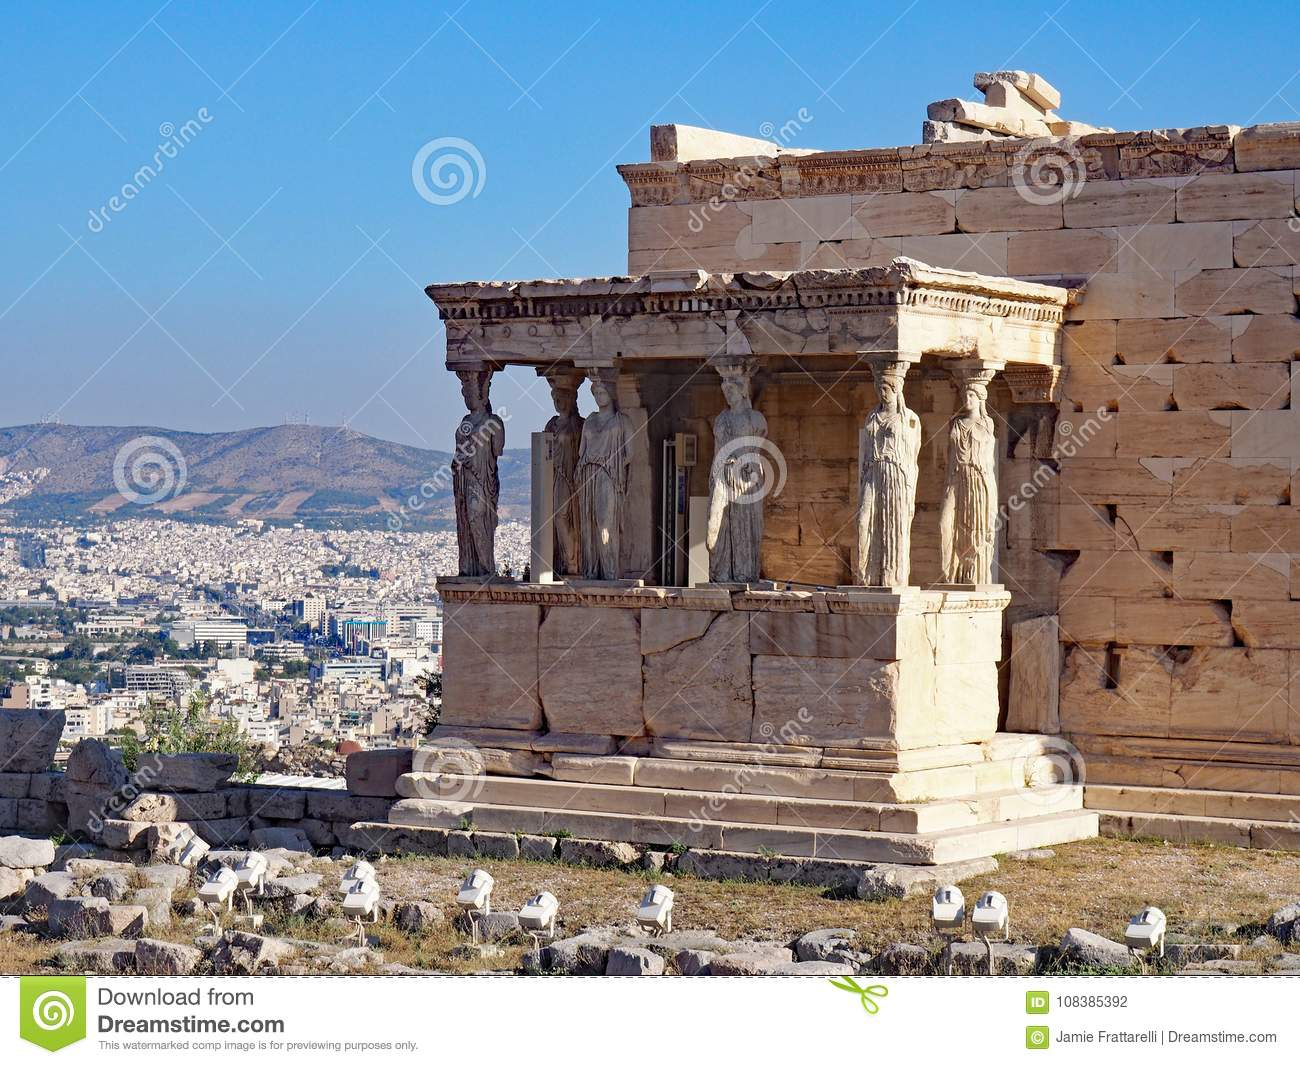 The Porch of the Caryatids, Athens, Greece